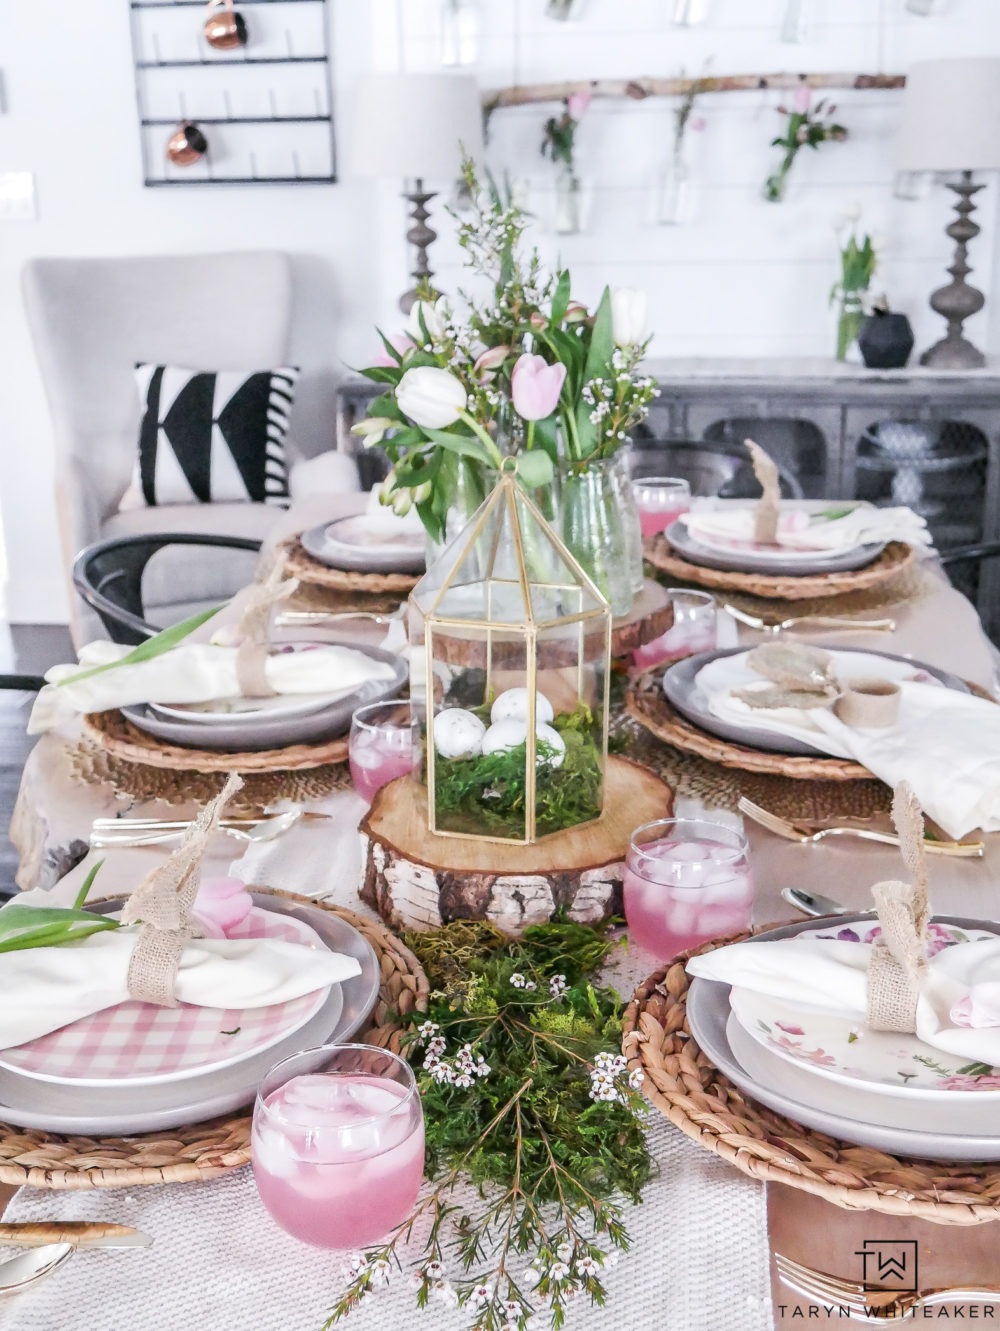 Very enchanting Easter table decor with fresh greenery centerpiece and woodsy touches. The pops of pink make it sweet and charming.